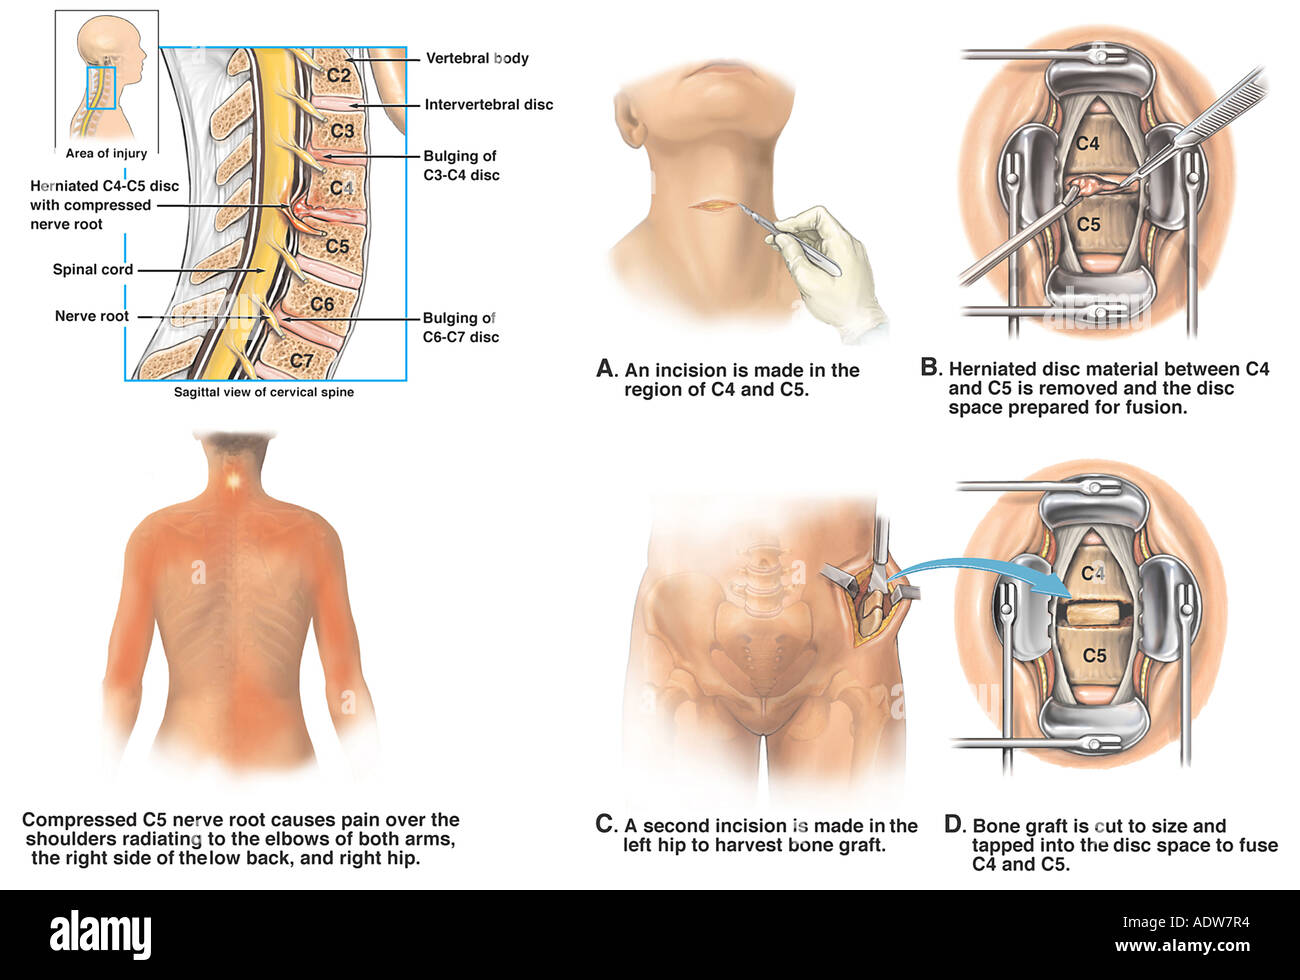 C3 4 C4 5 Cervical Spine Injuries with Surgical Discectomy and ...